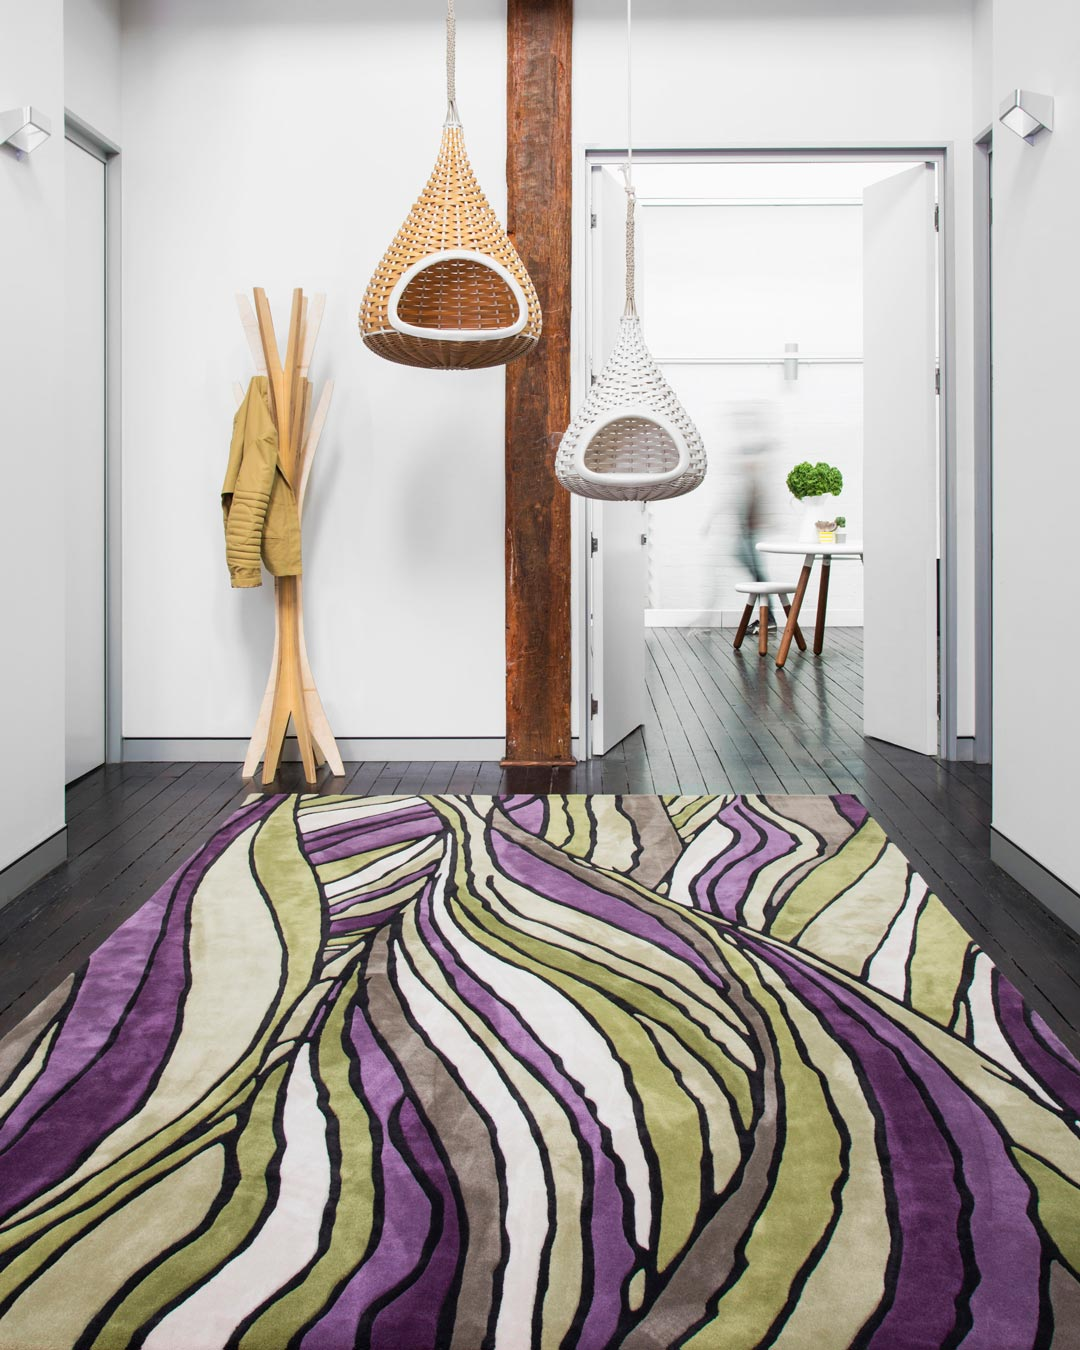 location of faraway rug by bleux in organic green and purple pattern